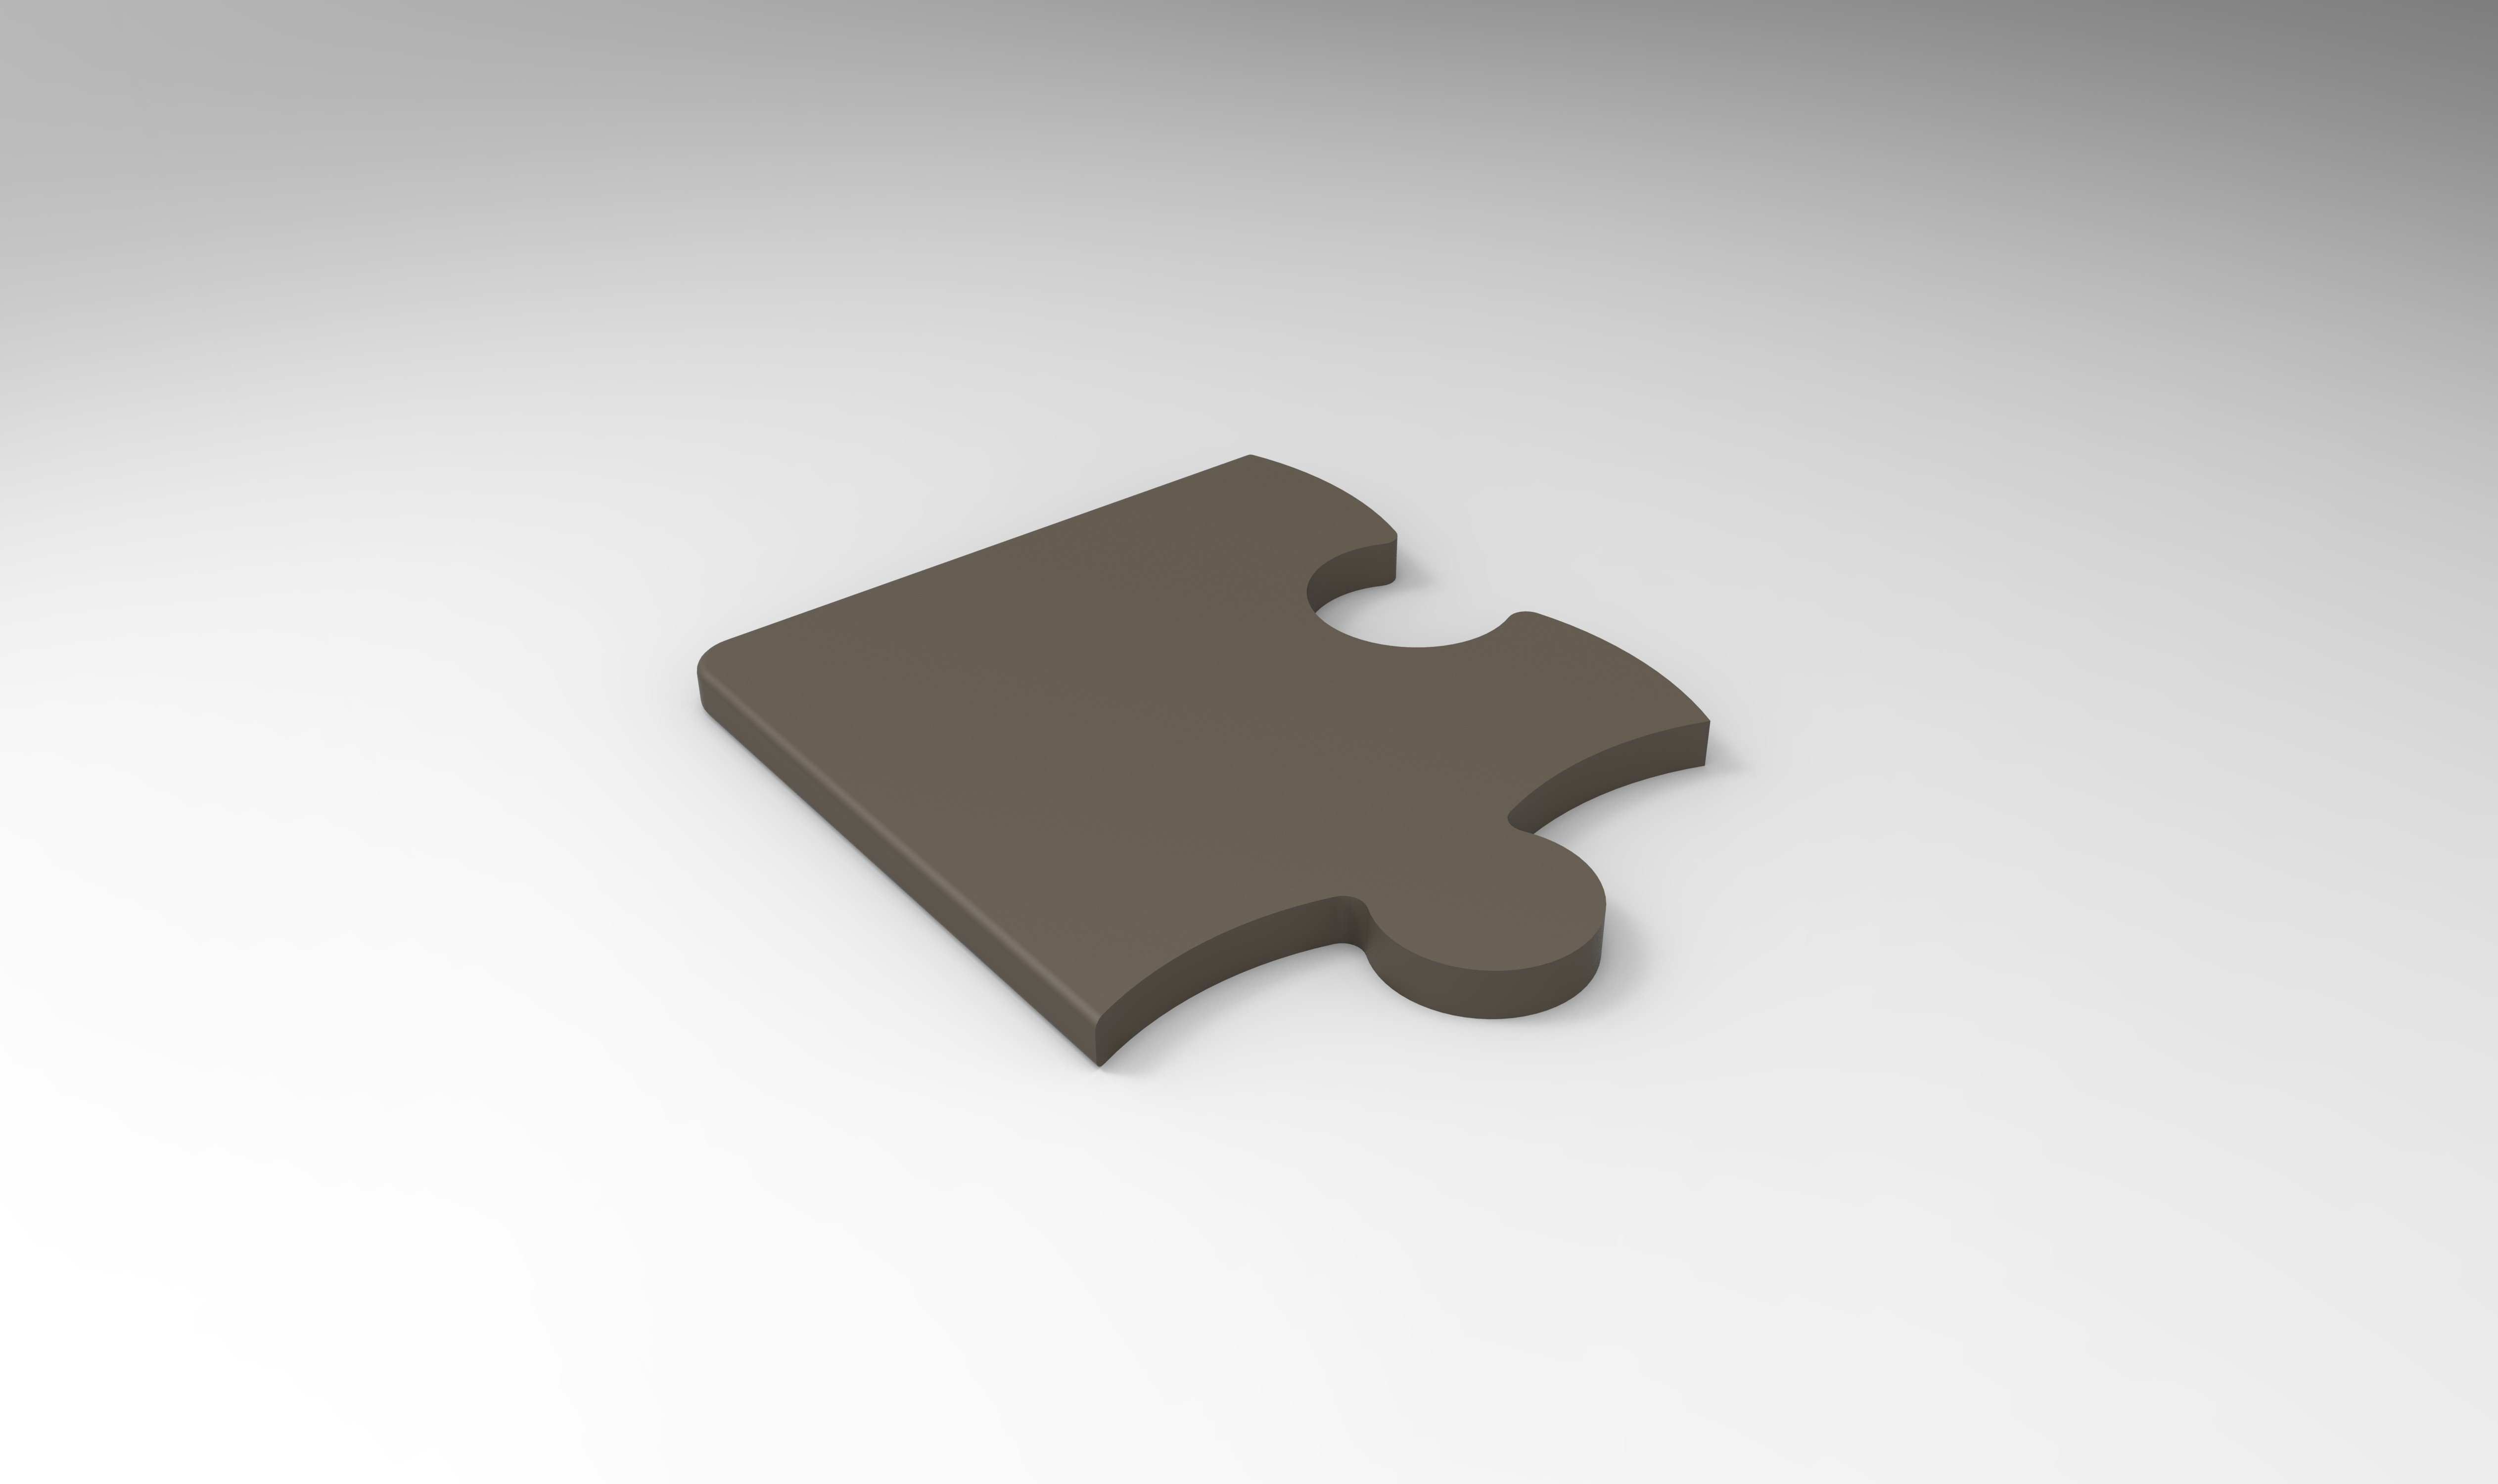 untitled.291.jpg Download free STL file Cup mats • 3D print design, GuilhemPerroud